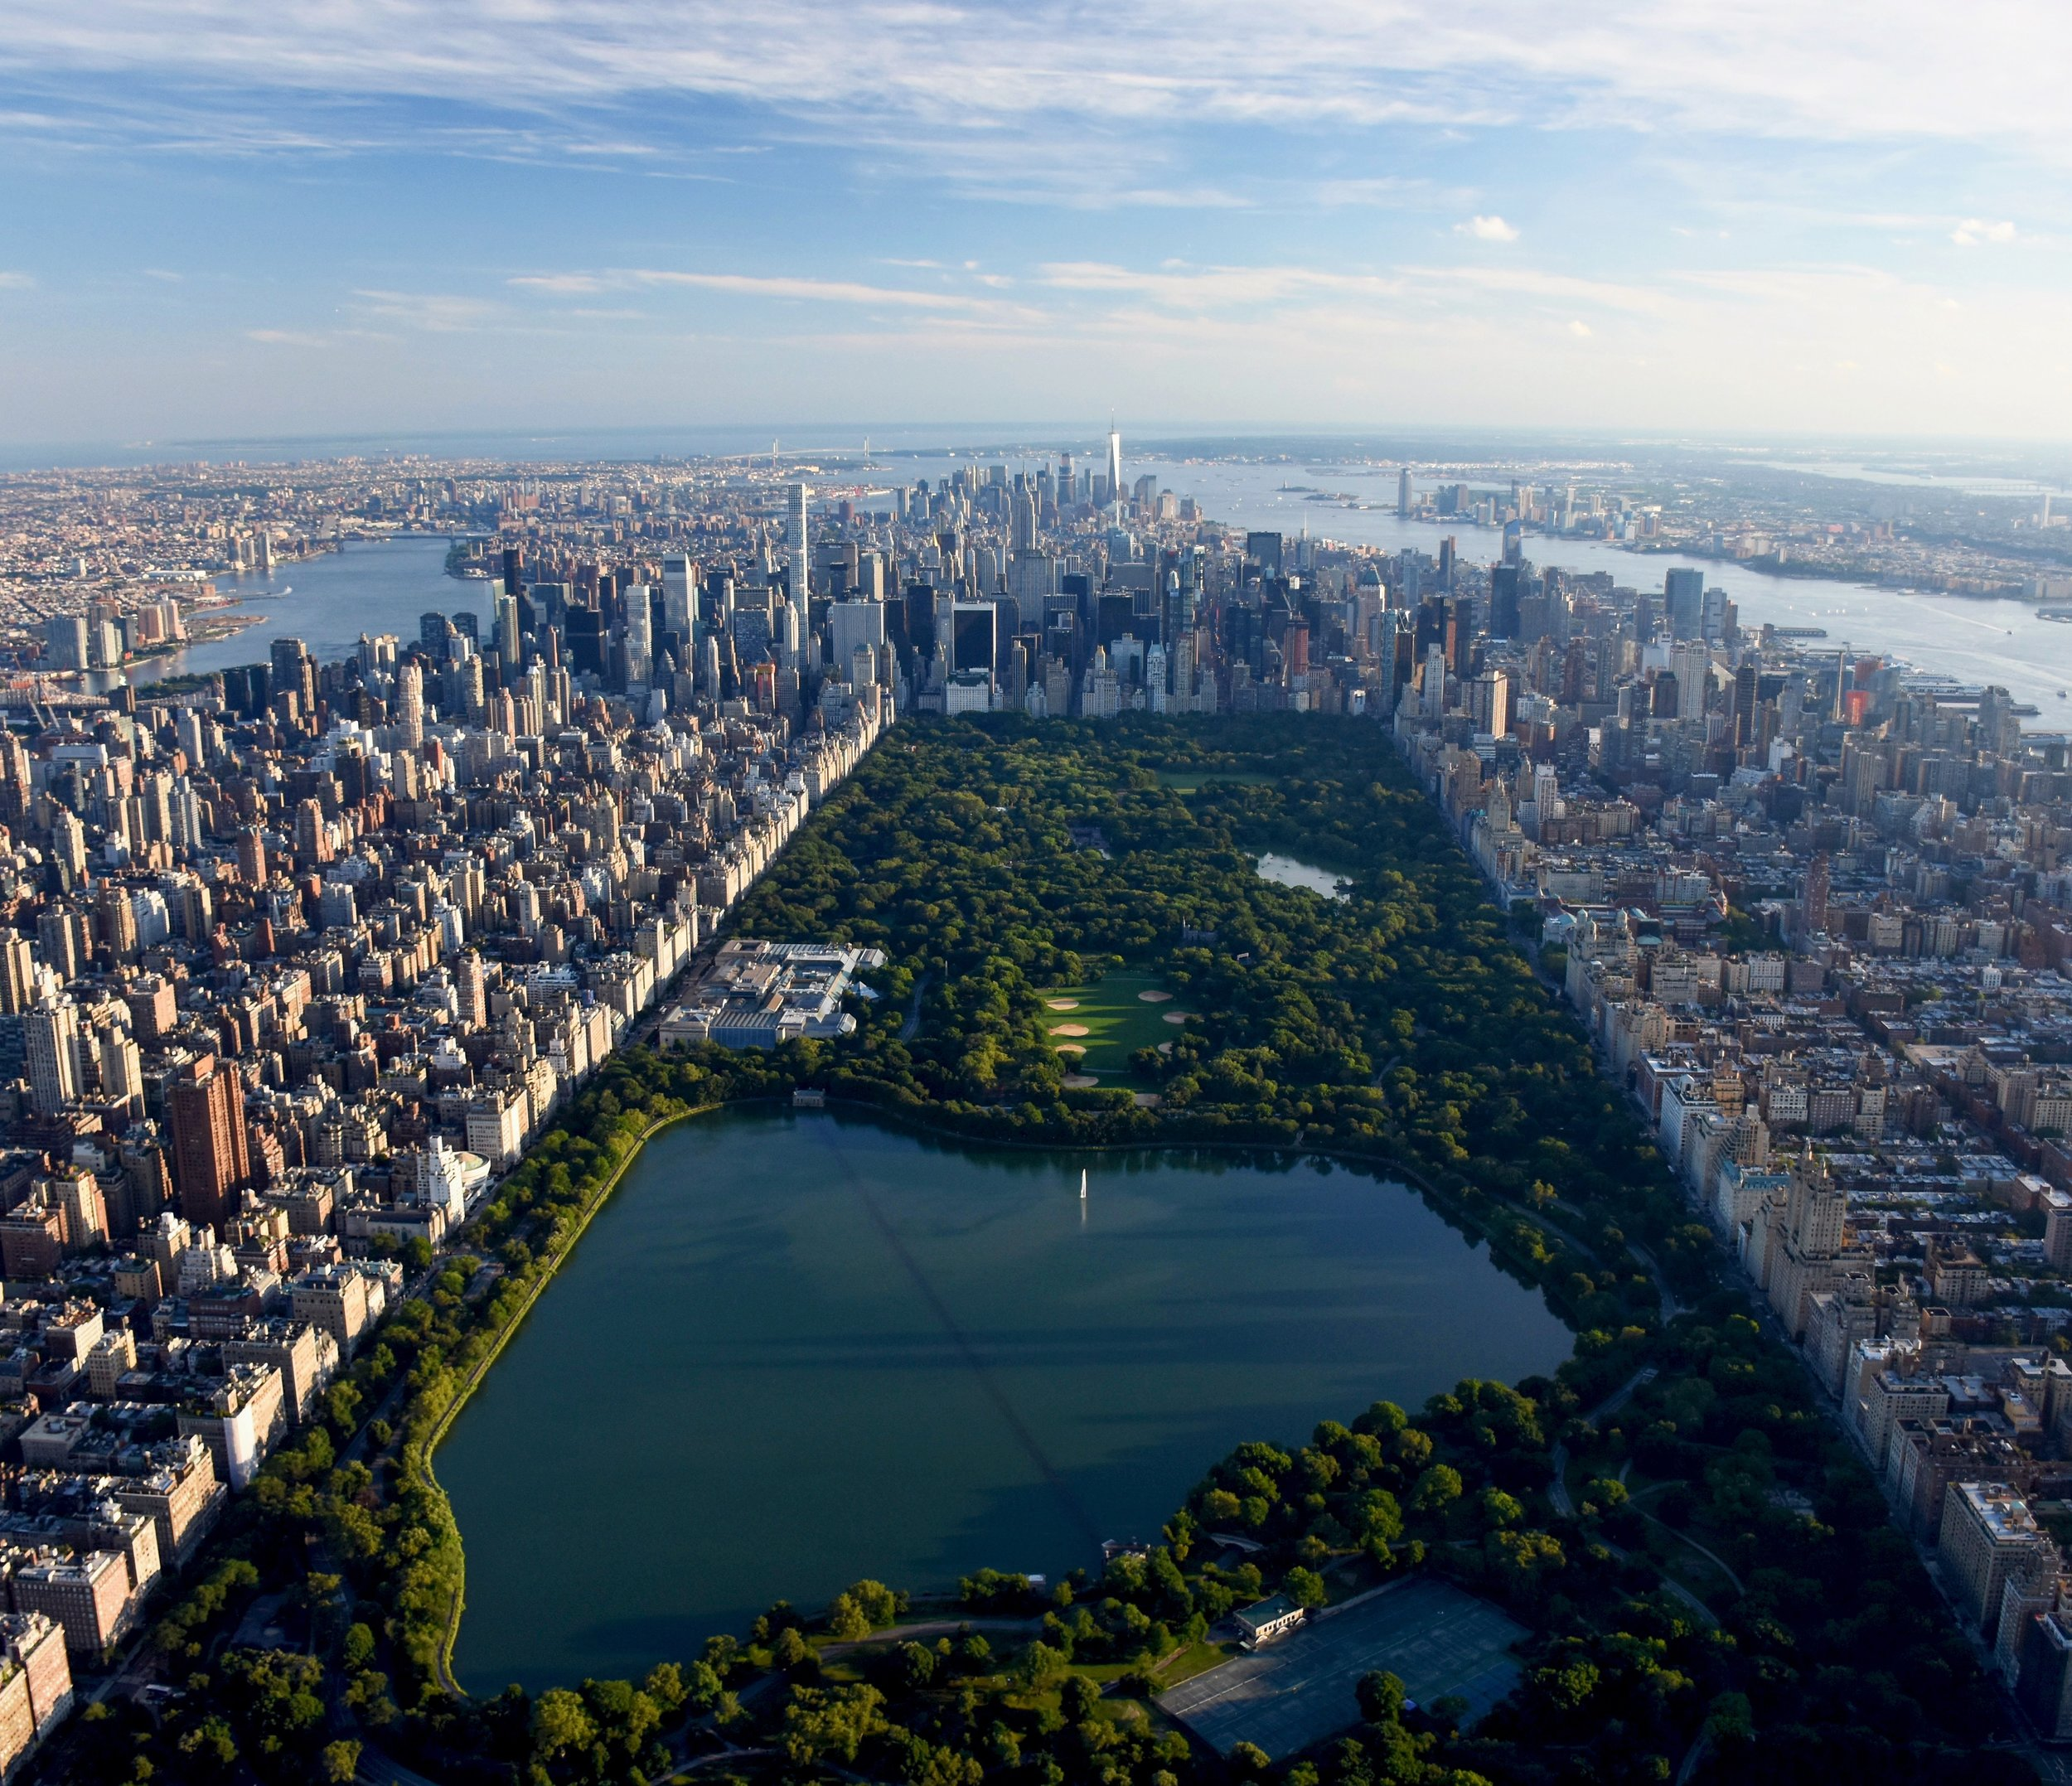 """Check out Central Park captured from helicopter by our founder Benjamin Grant. Located in the middle of Manhattan in New York City, the park spans 843 acres - or 6% of the borough. One of the most influential innovations in the park's design was its """"separate circulation"""" systems for pedestrians, horseback riders, and automobiles. This concealed """"crosstown"""" commercial traffic in sunken roadways, and densely planted shrub belts in order to maintain a rustic ambiance."""